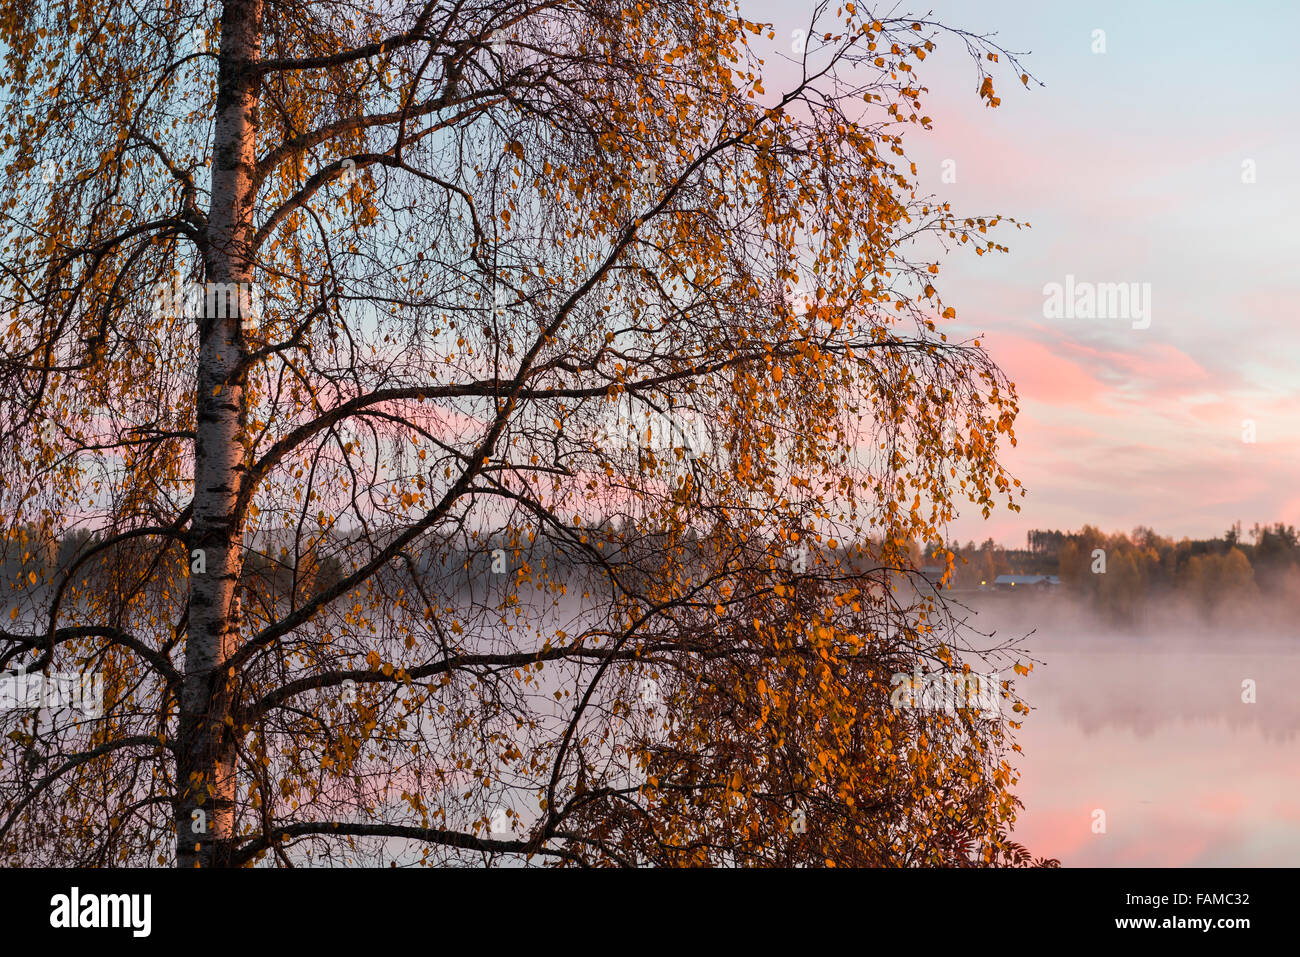 Lakeside birch tree with autumn leaves - Stock Image